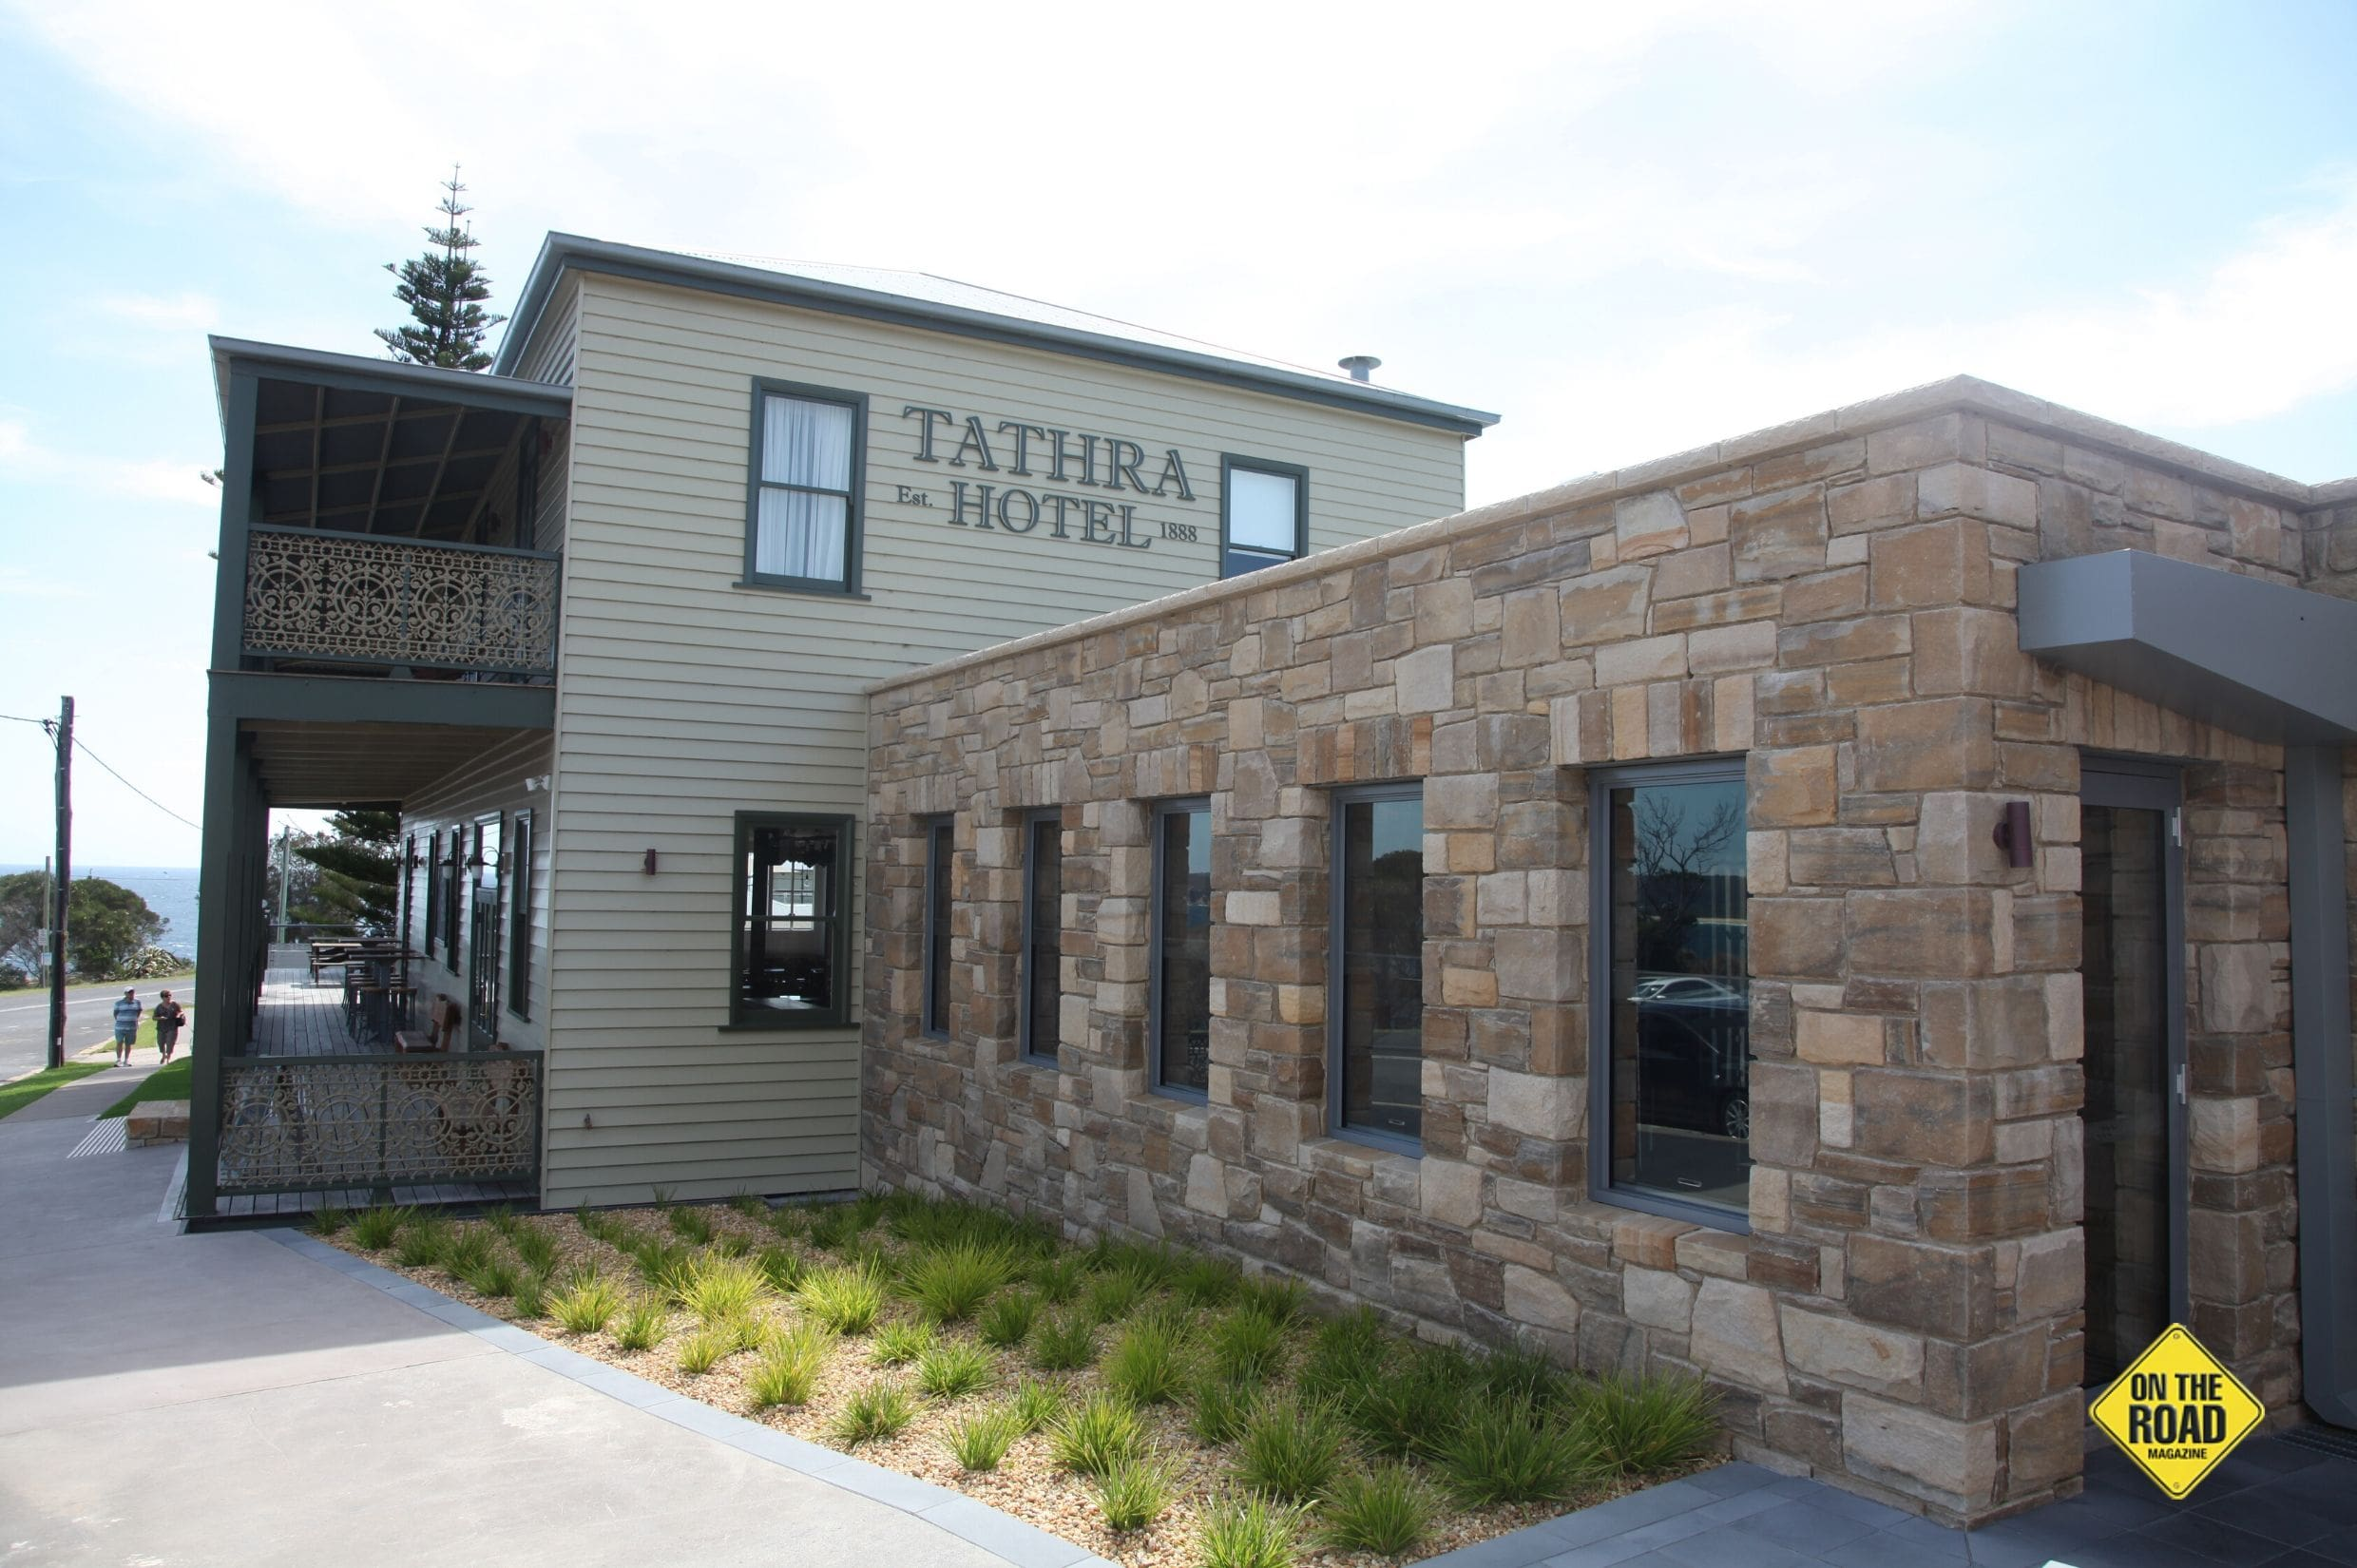 Tathra pub has been fully renovated and is in a great location